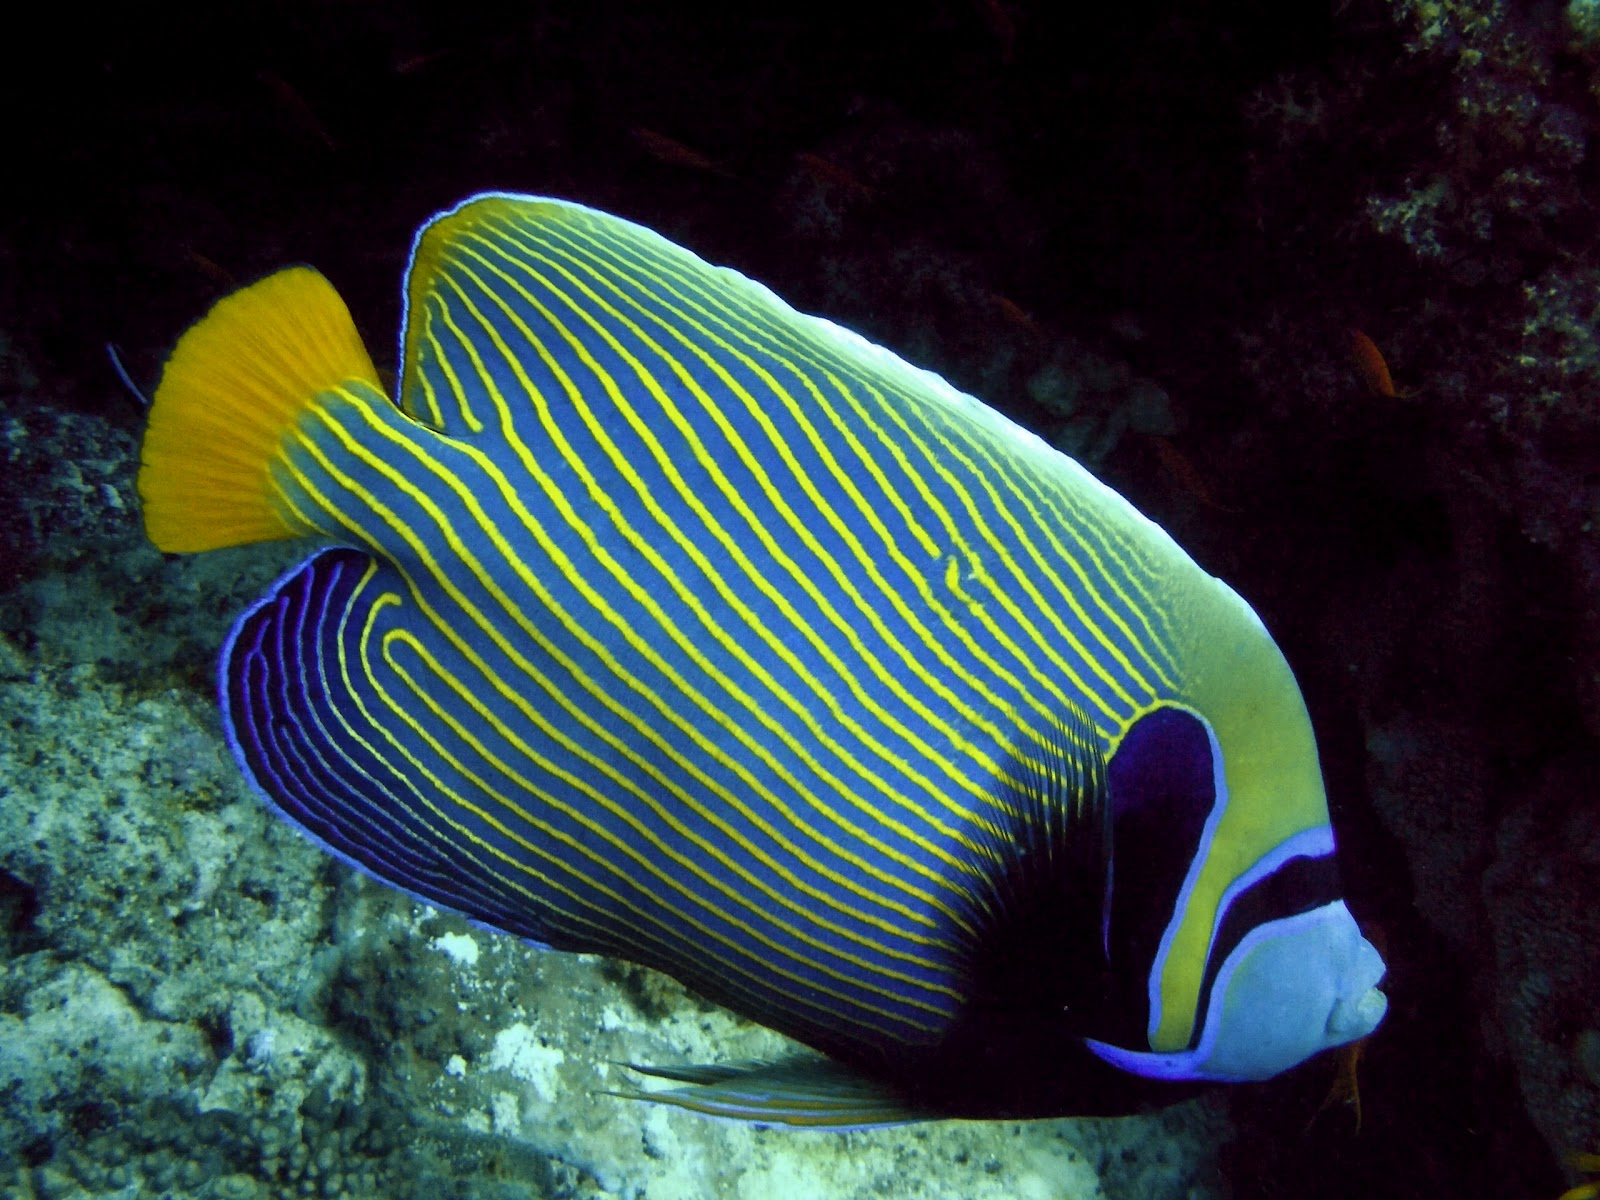 Angelfish has not yet fill the personality profile